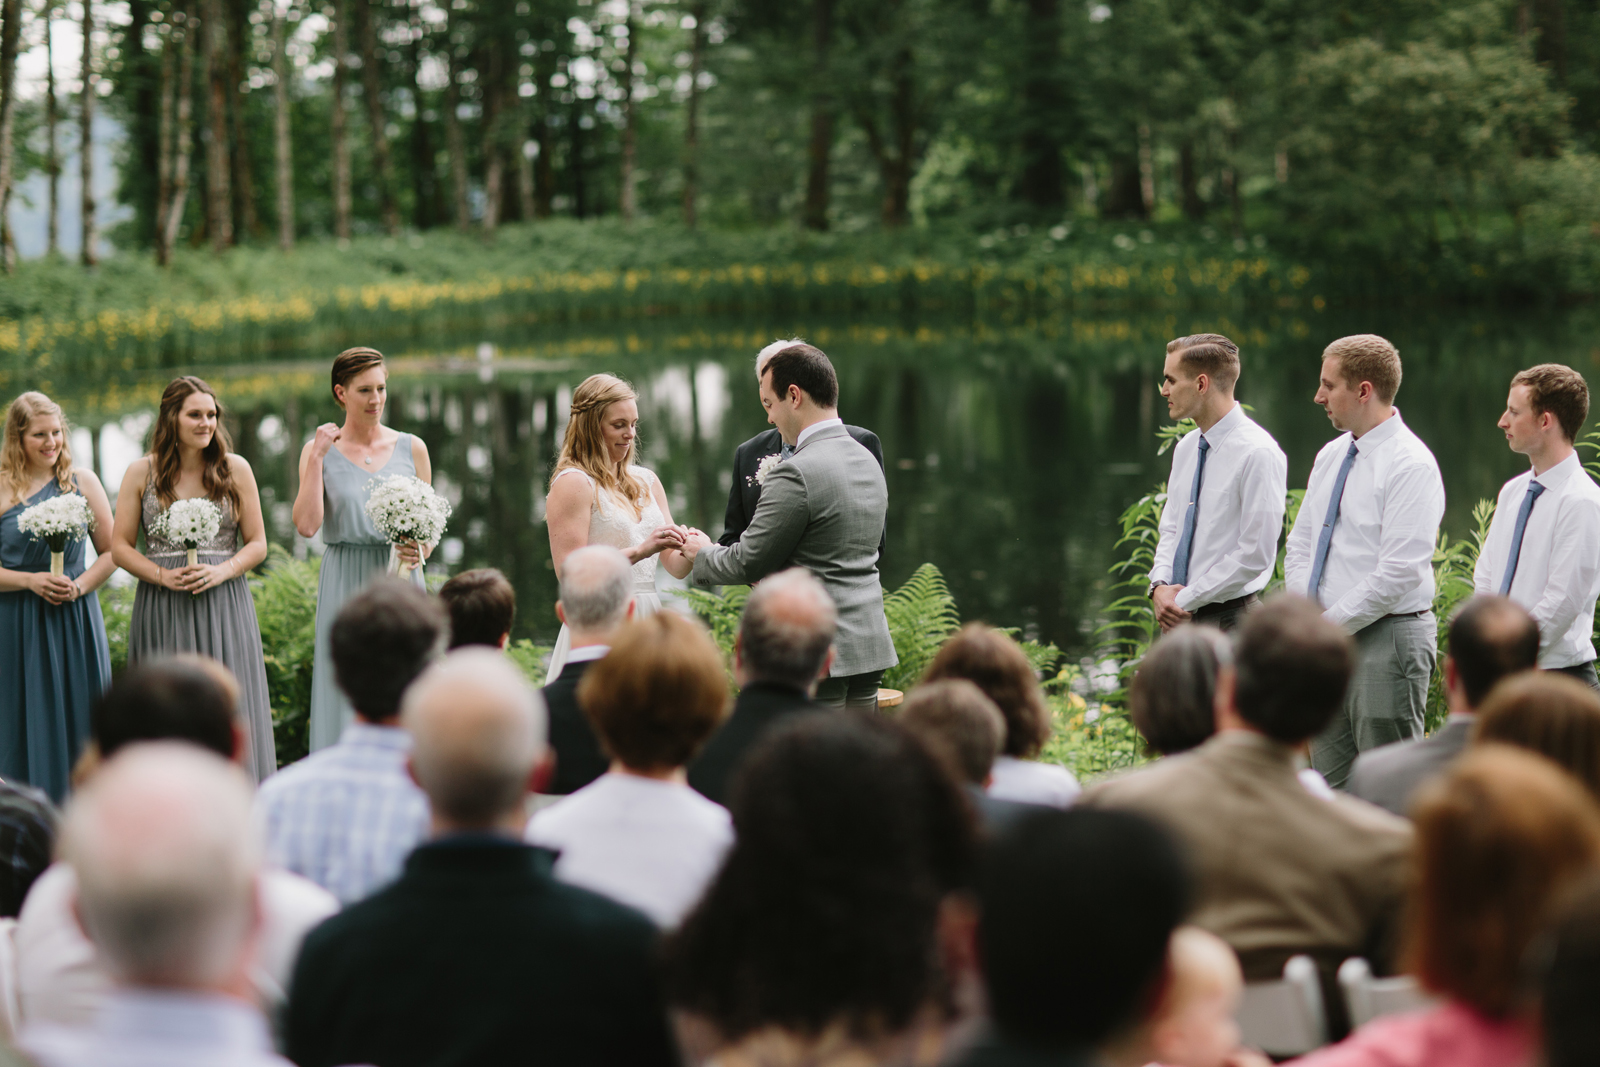 The bride puts a ring on the groom during the wedding ceremony at Bridal Veil